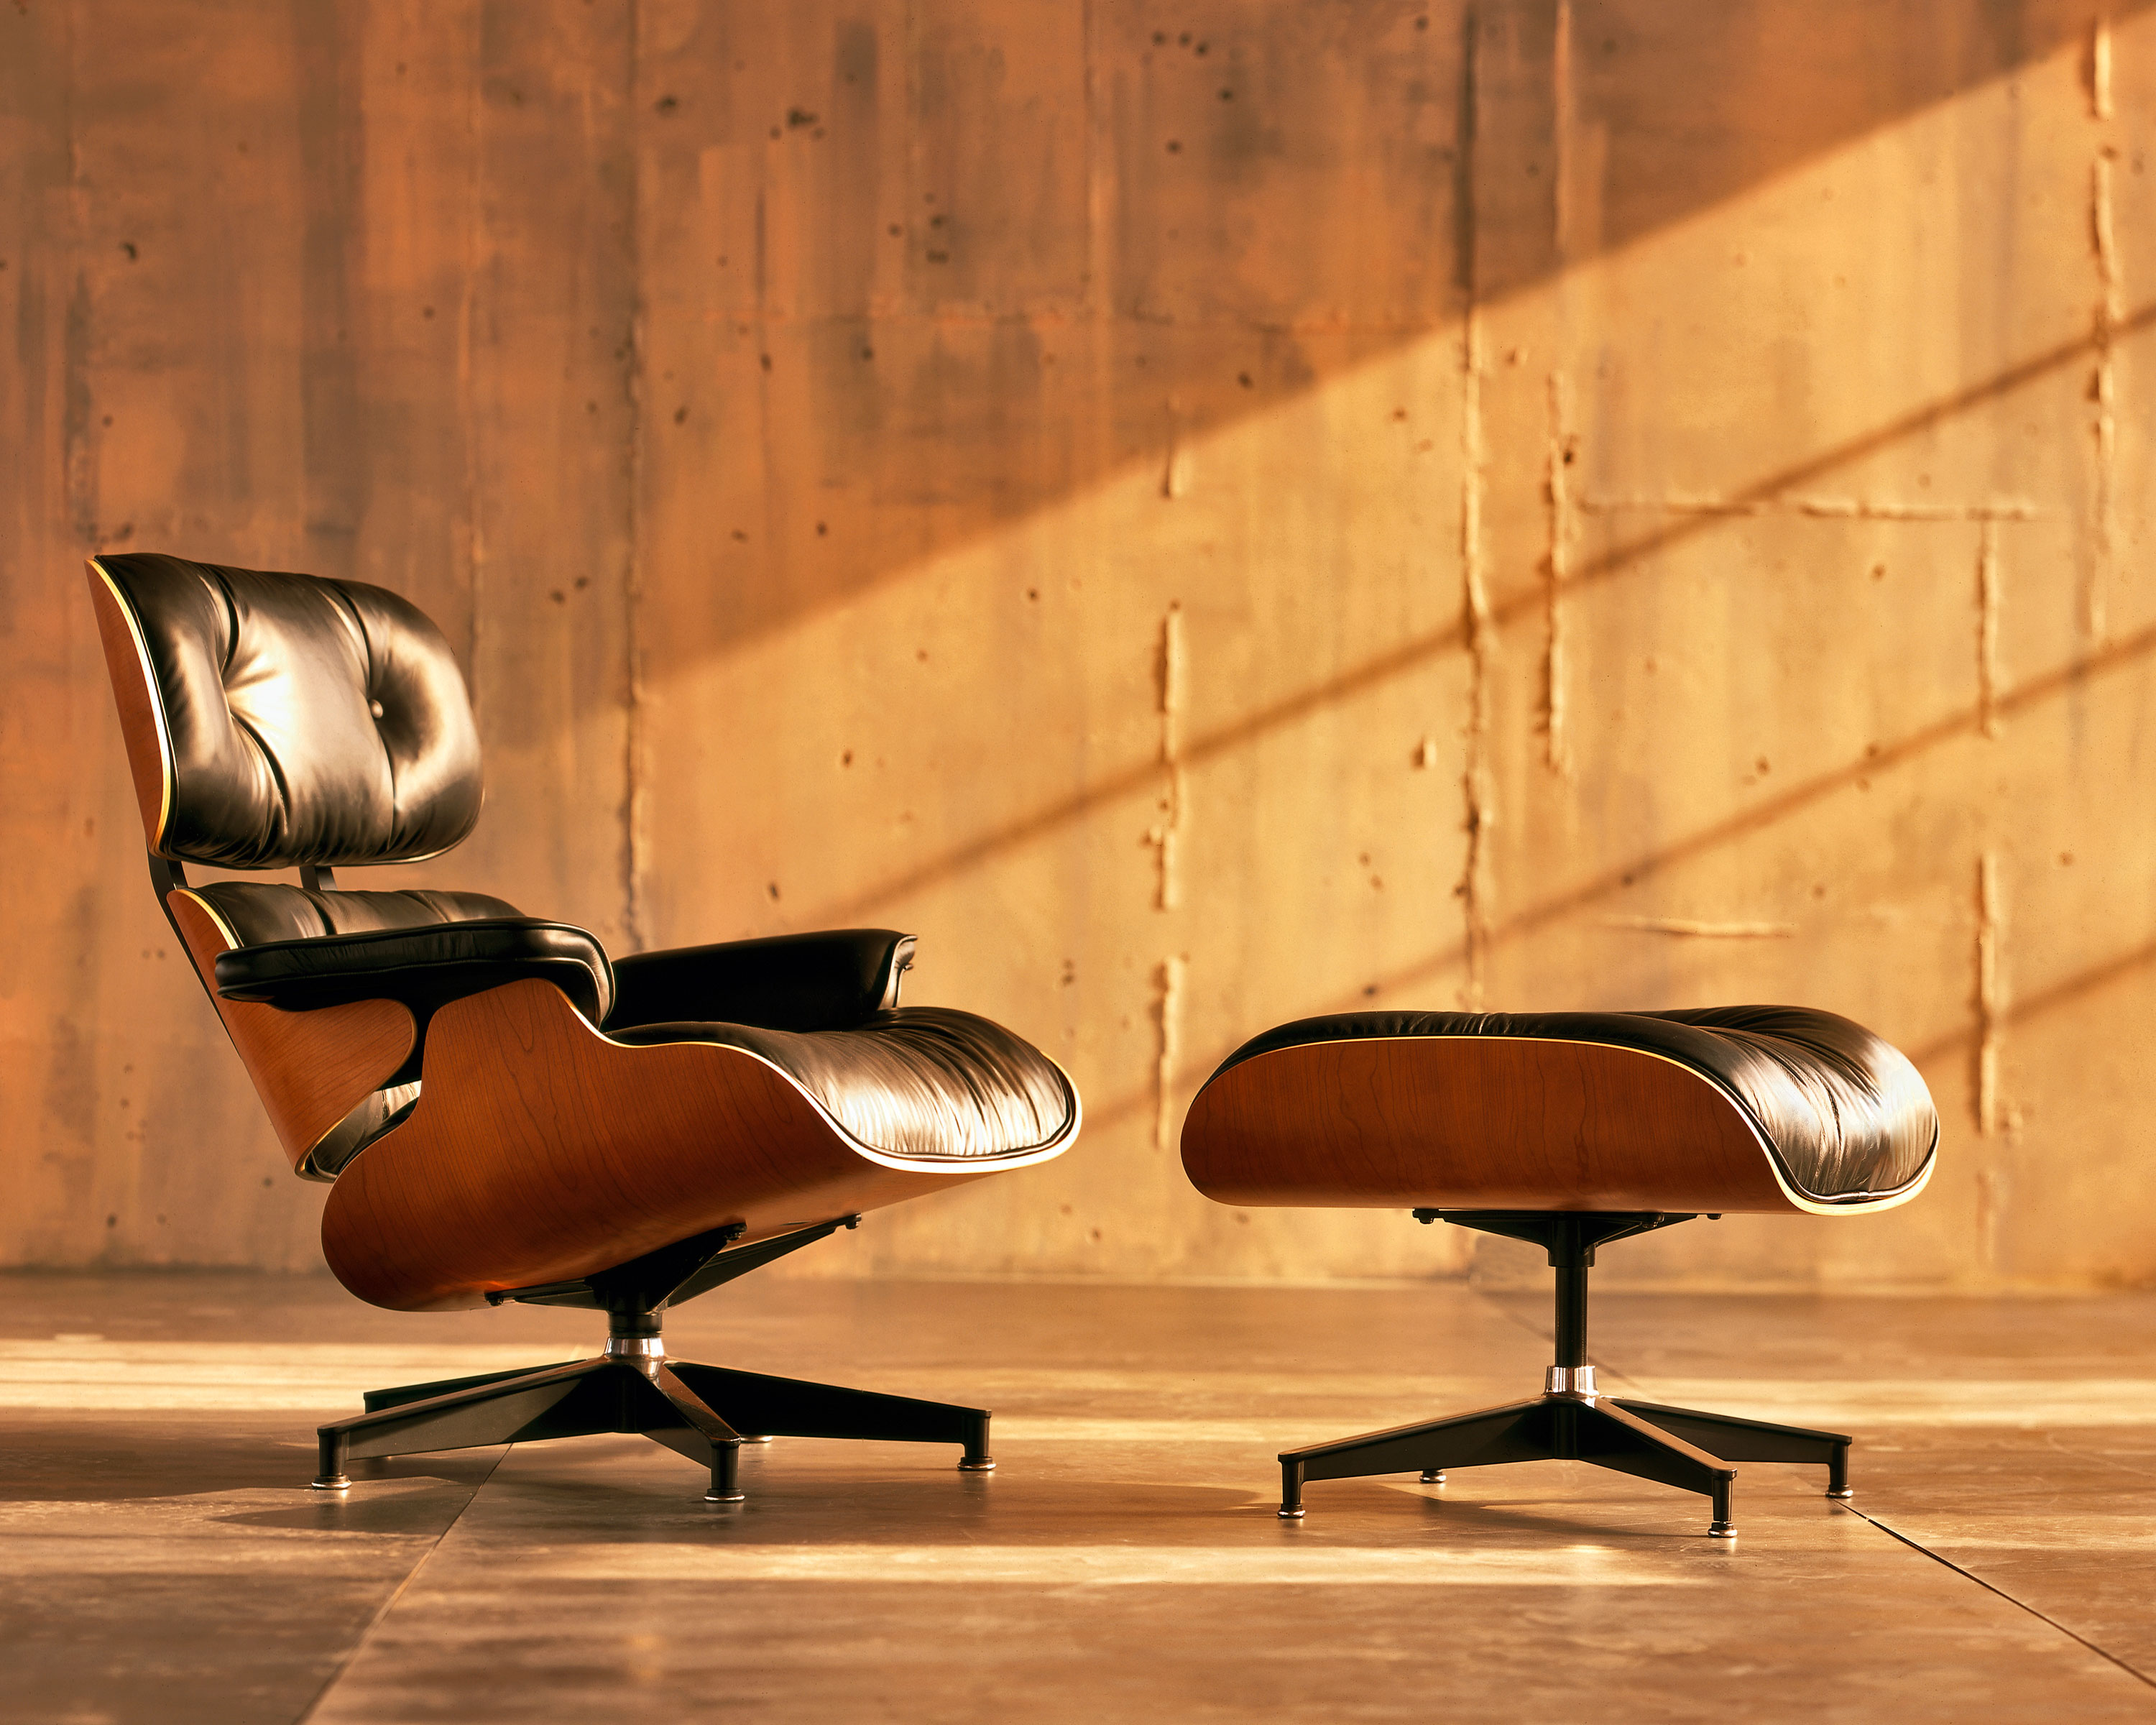 Lounge Chair Eames Replica Of Eames Lounge Chair And Ottoman | Find And Buy